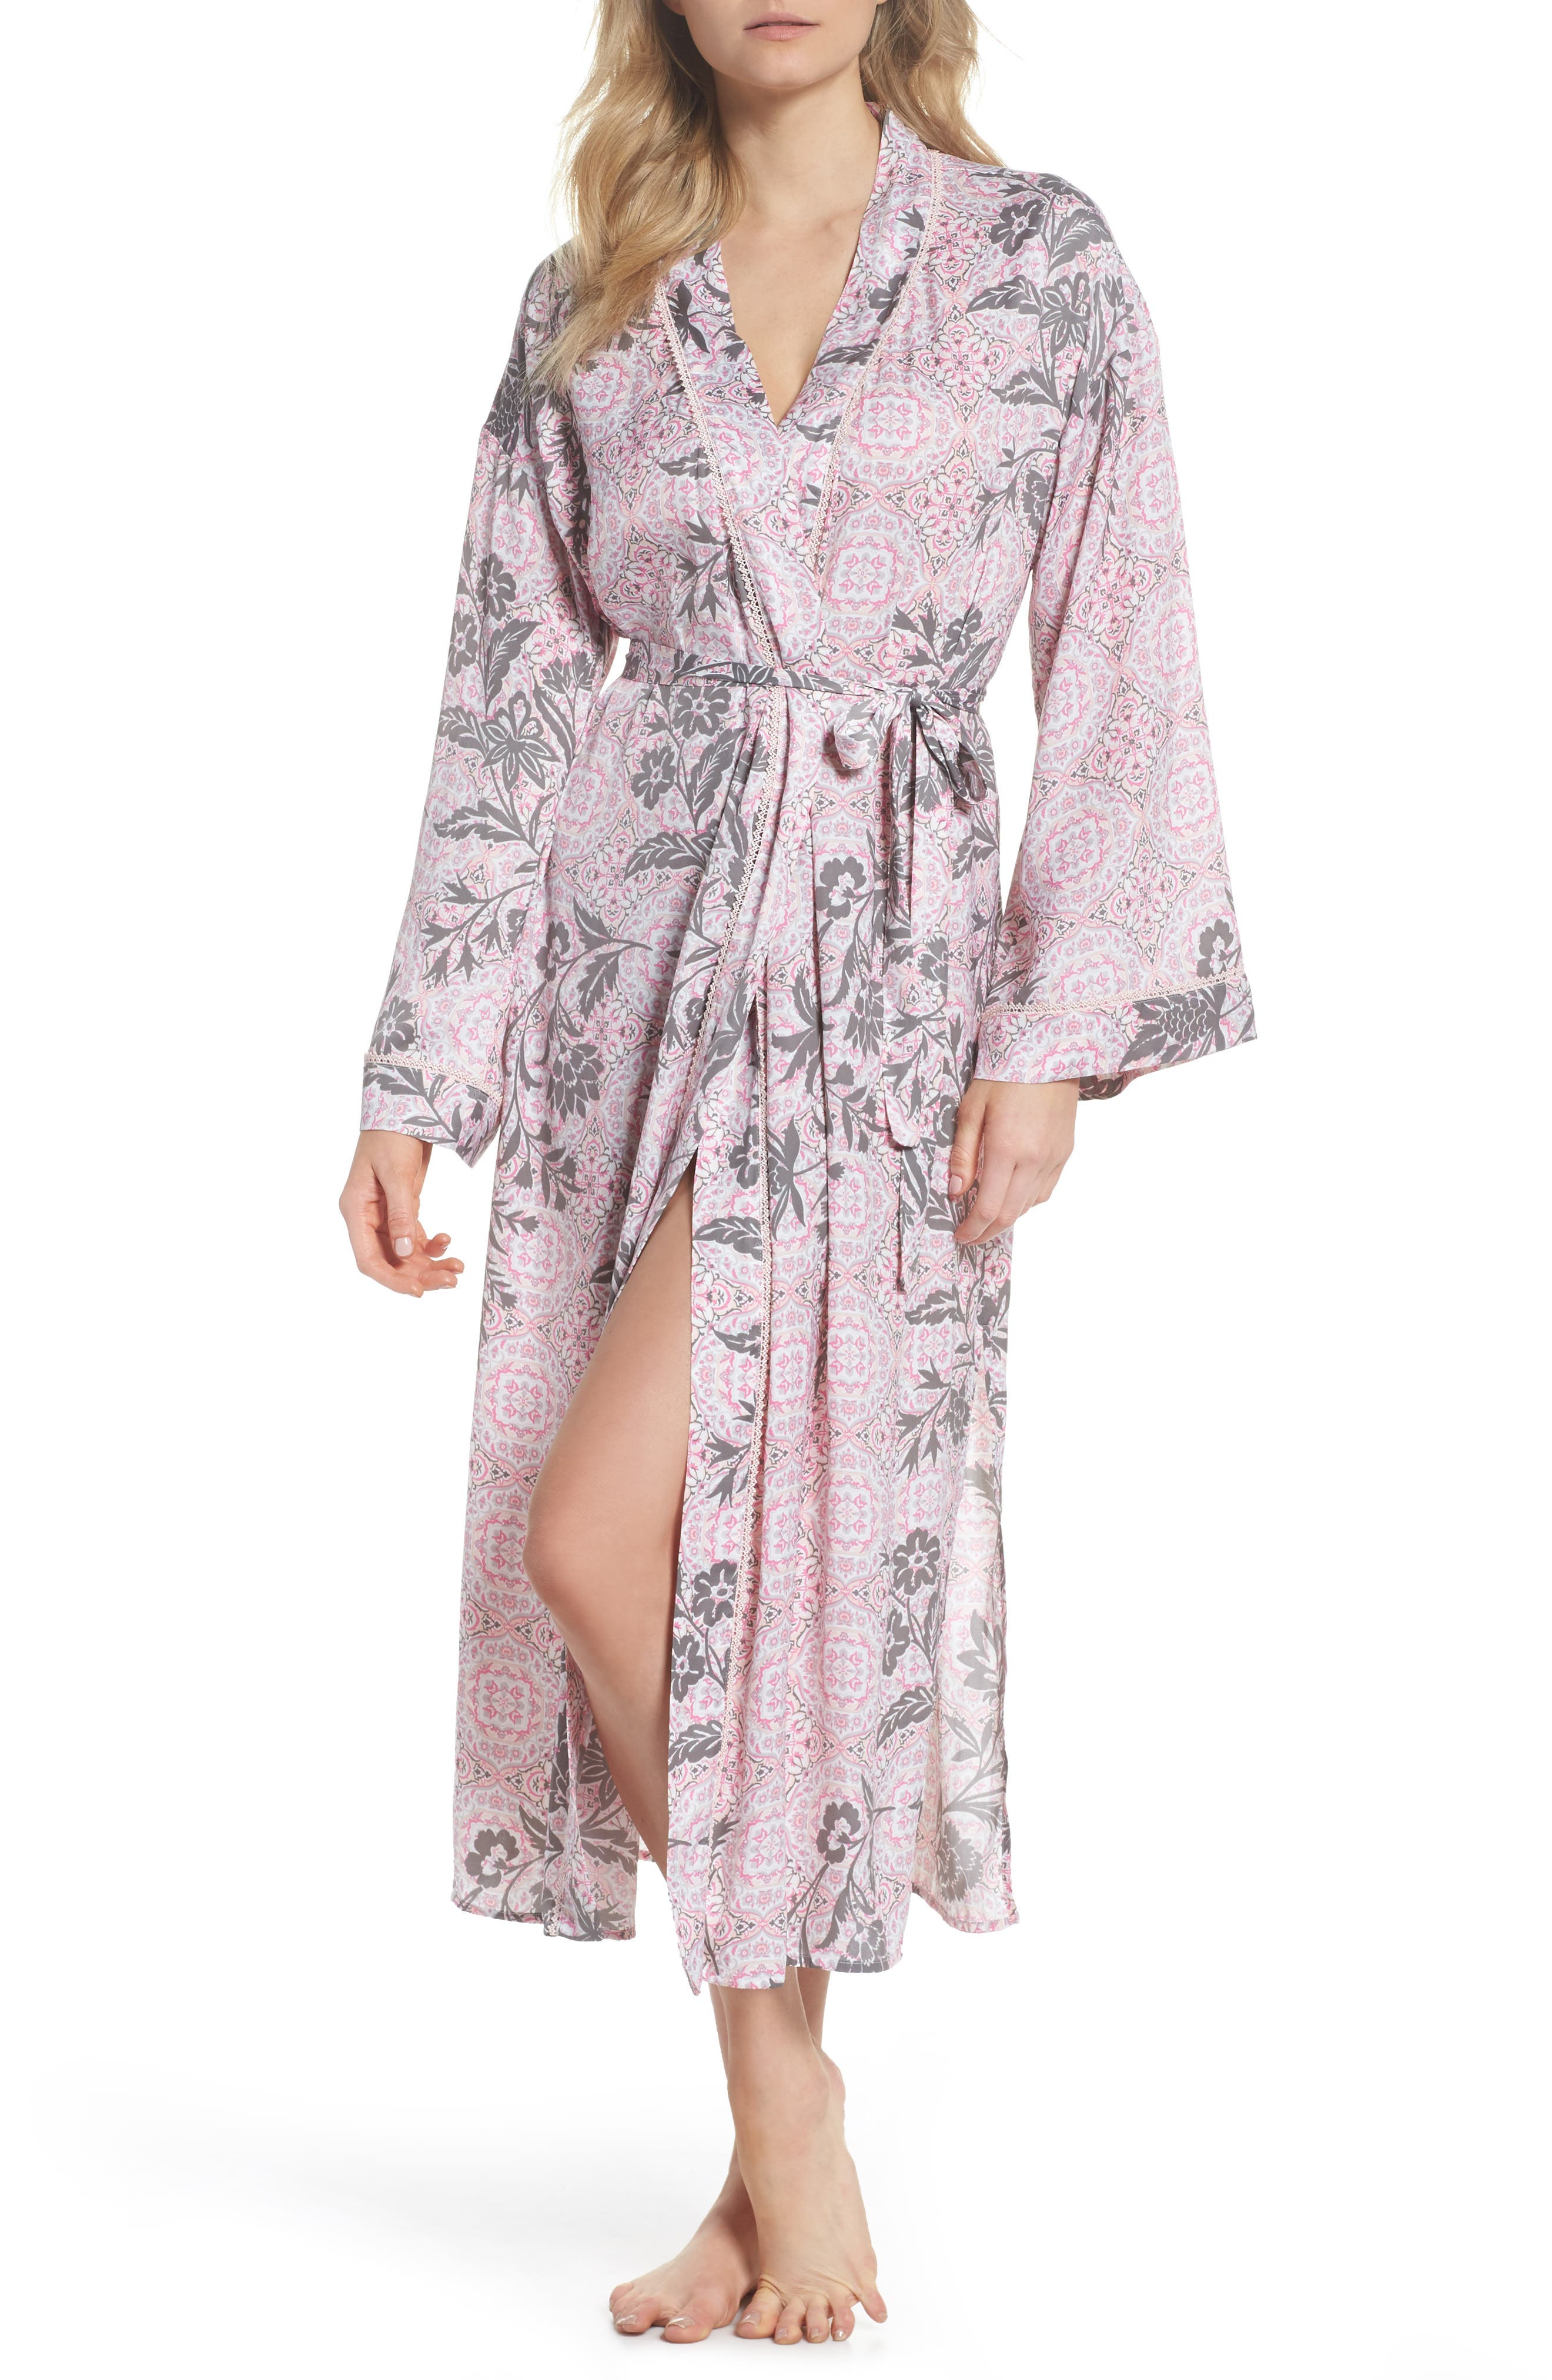 Alternate Image 1 Selected - Nordstrom Lingerie Sweet Dreams Satin Robe